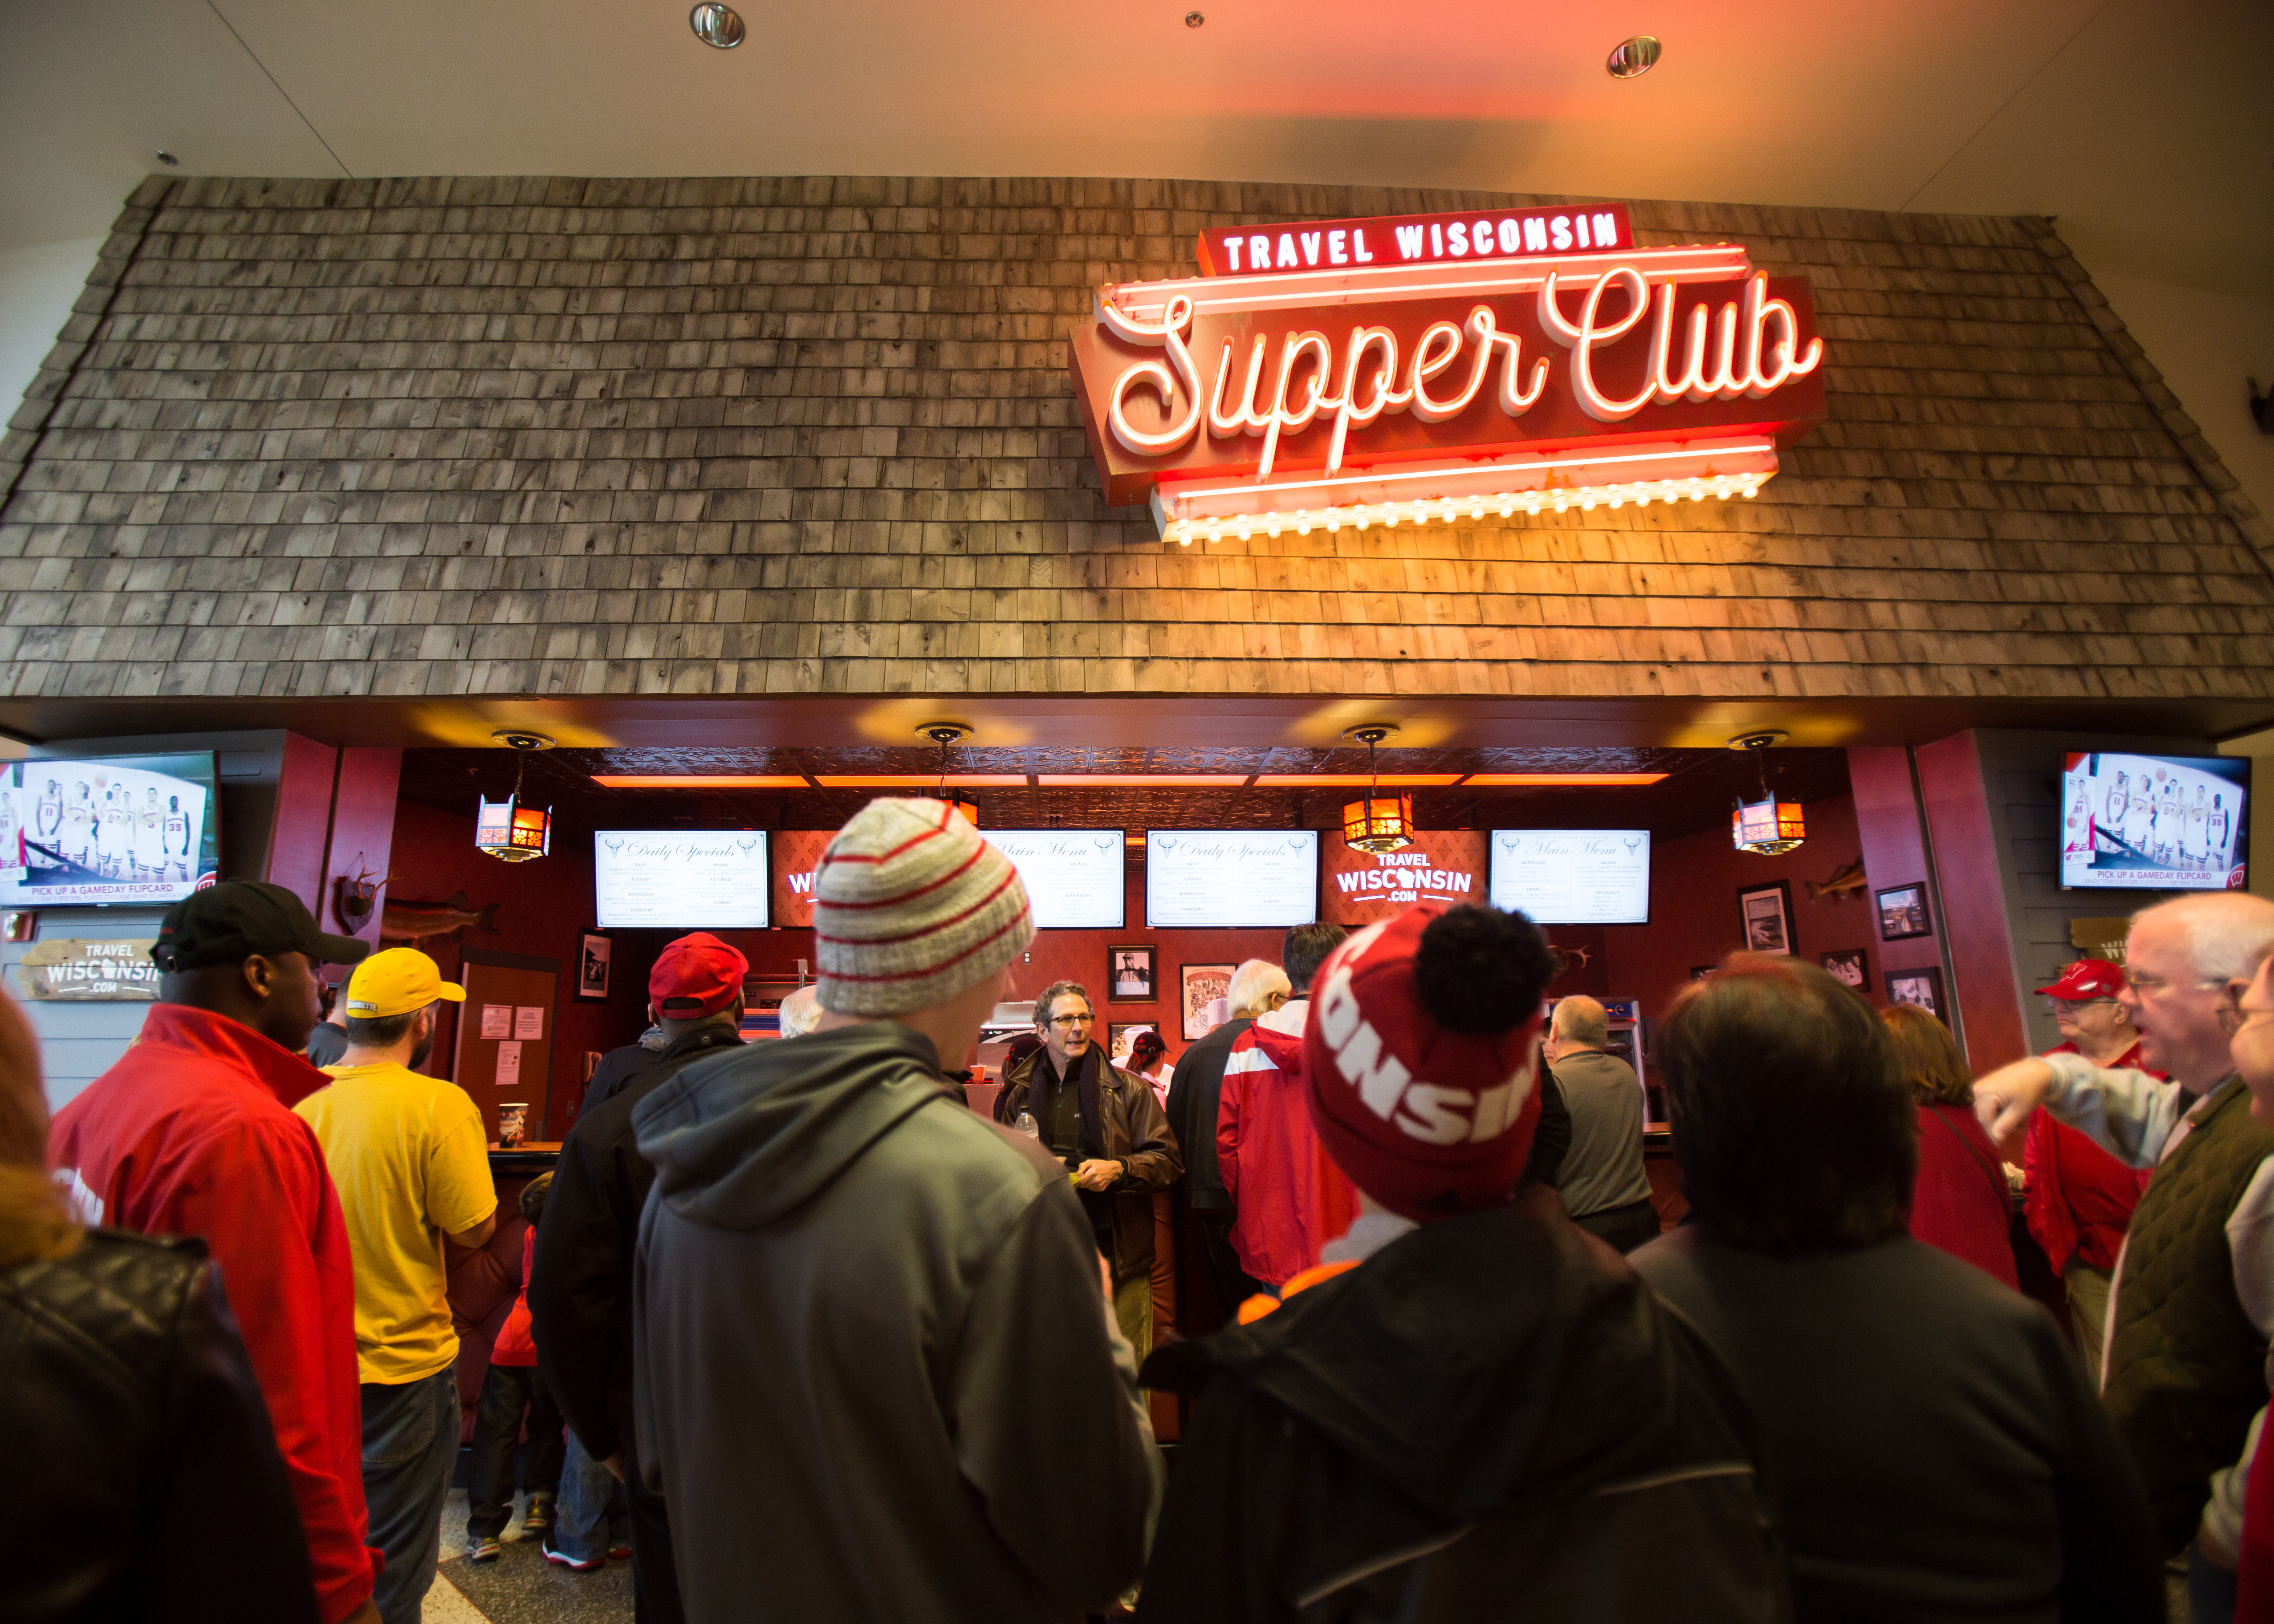 Halftime Rush At The Travel Wisconsin Supper Club Travel